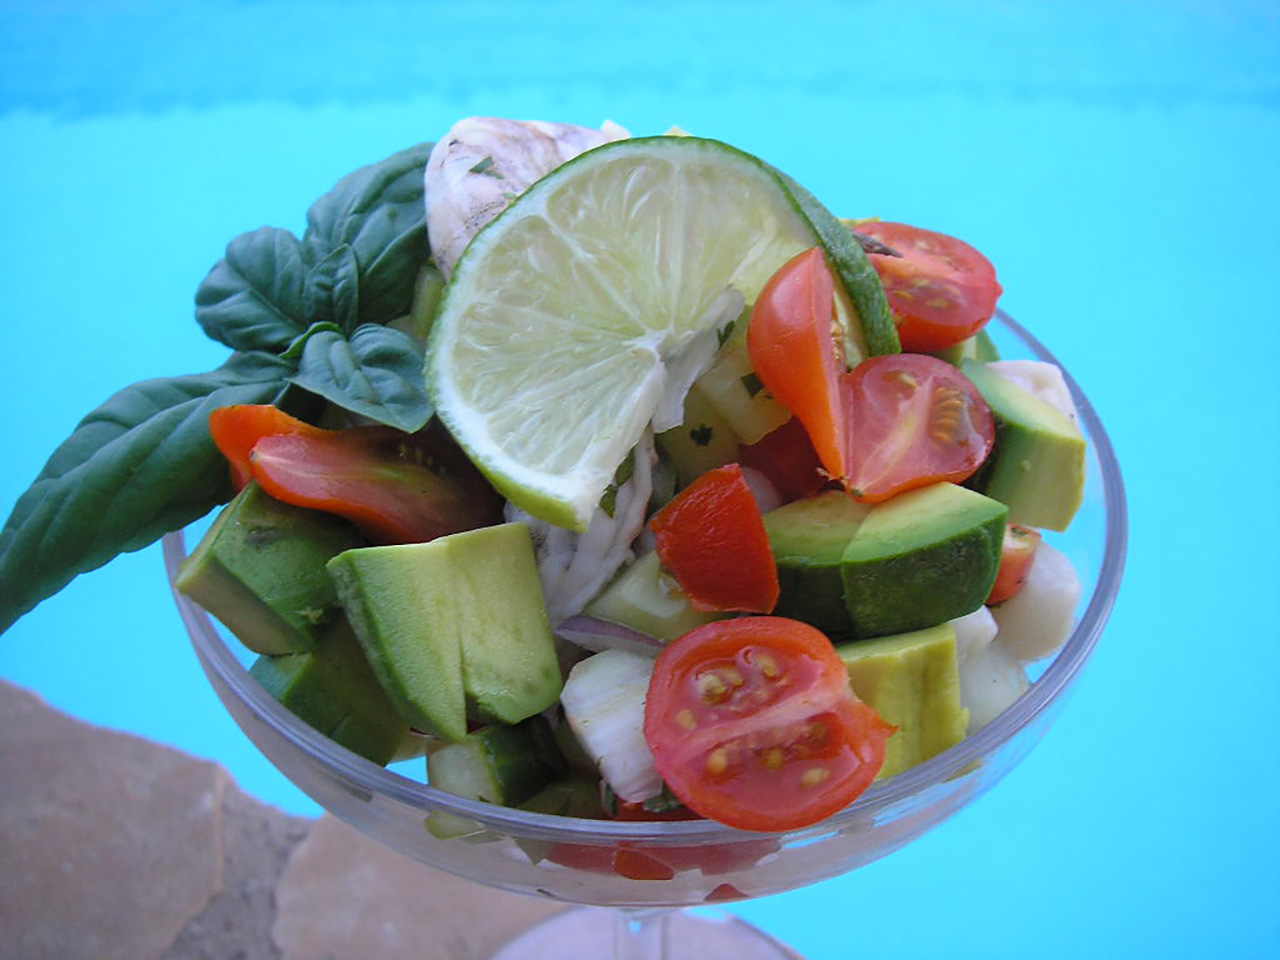 This is a super easy ceviche to try if you have never made ceviche before. Fresh shrimp, scallops, cilantro, chopped tomatoes, celery, green onions, serrano peppers, and a generous amount of lime juice are combined in a bowl, seasoned and chilled for 3 hours — that's it! Spoon into martini glasses for a nice presentation.